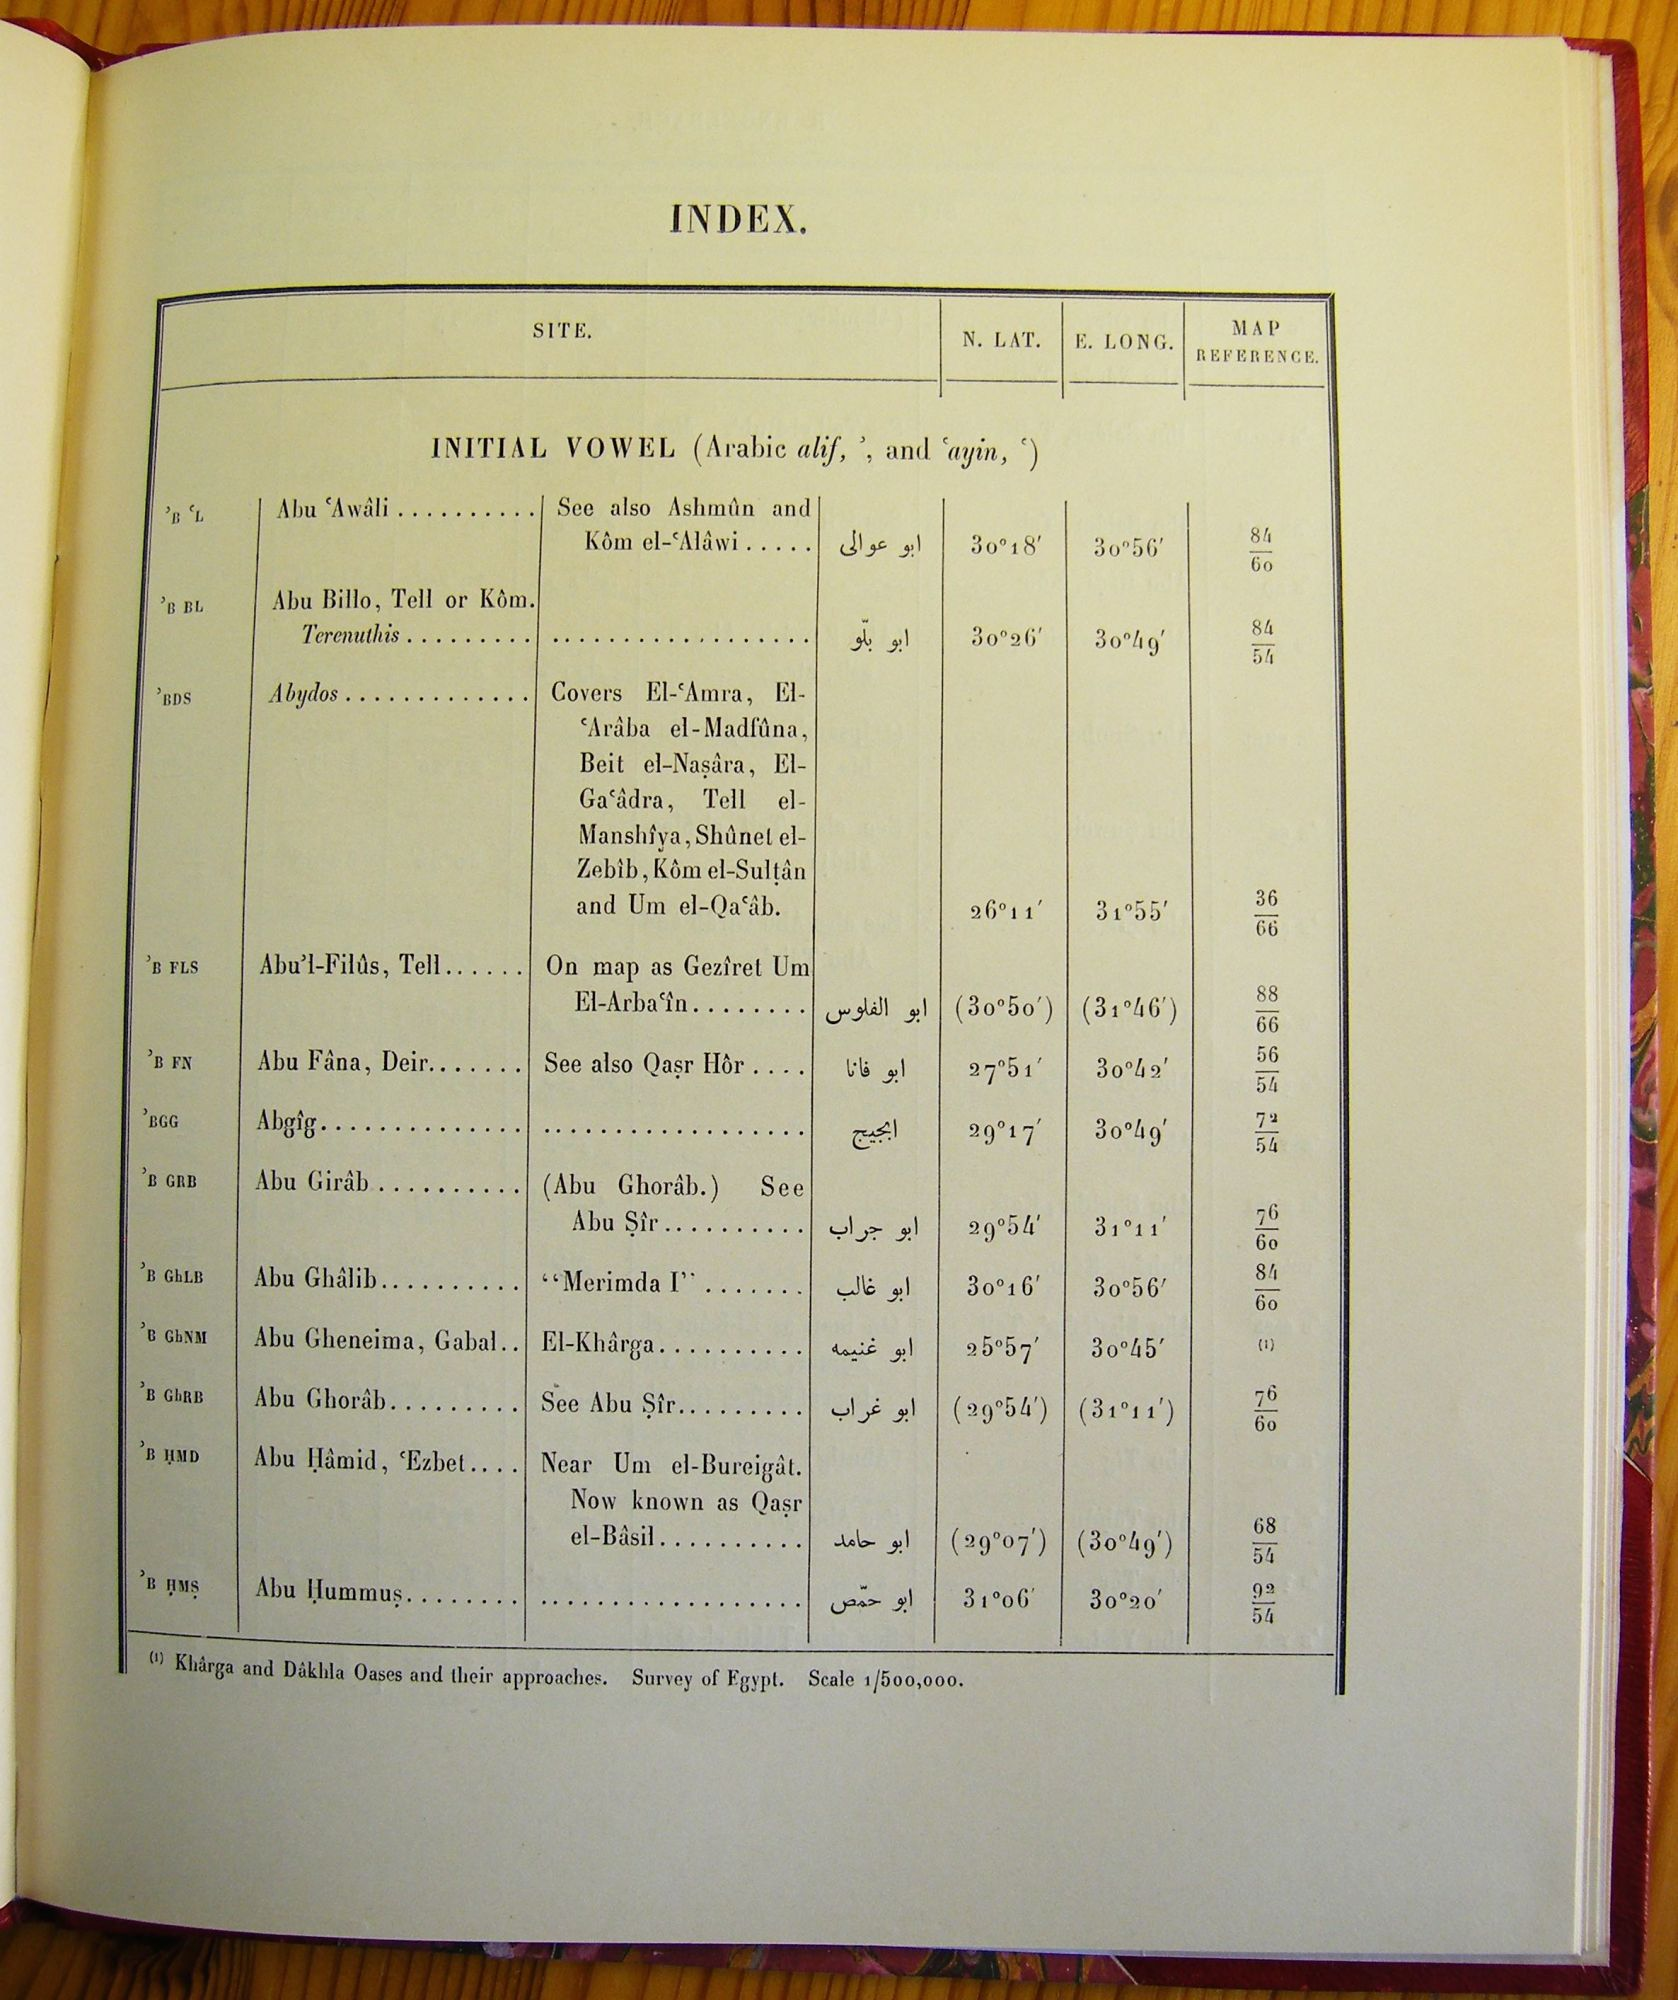 Index of Egyptian and Sudanese sites from which the Cairo